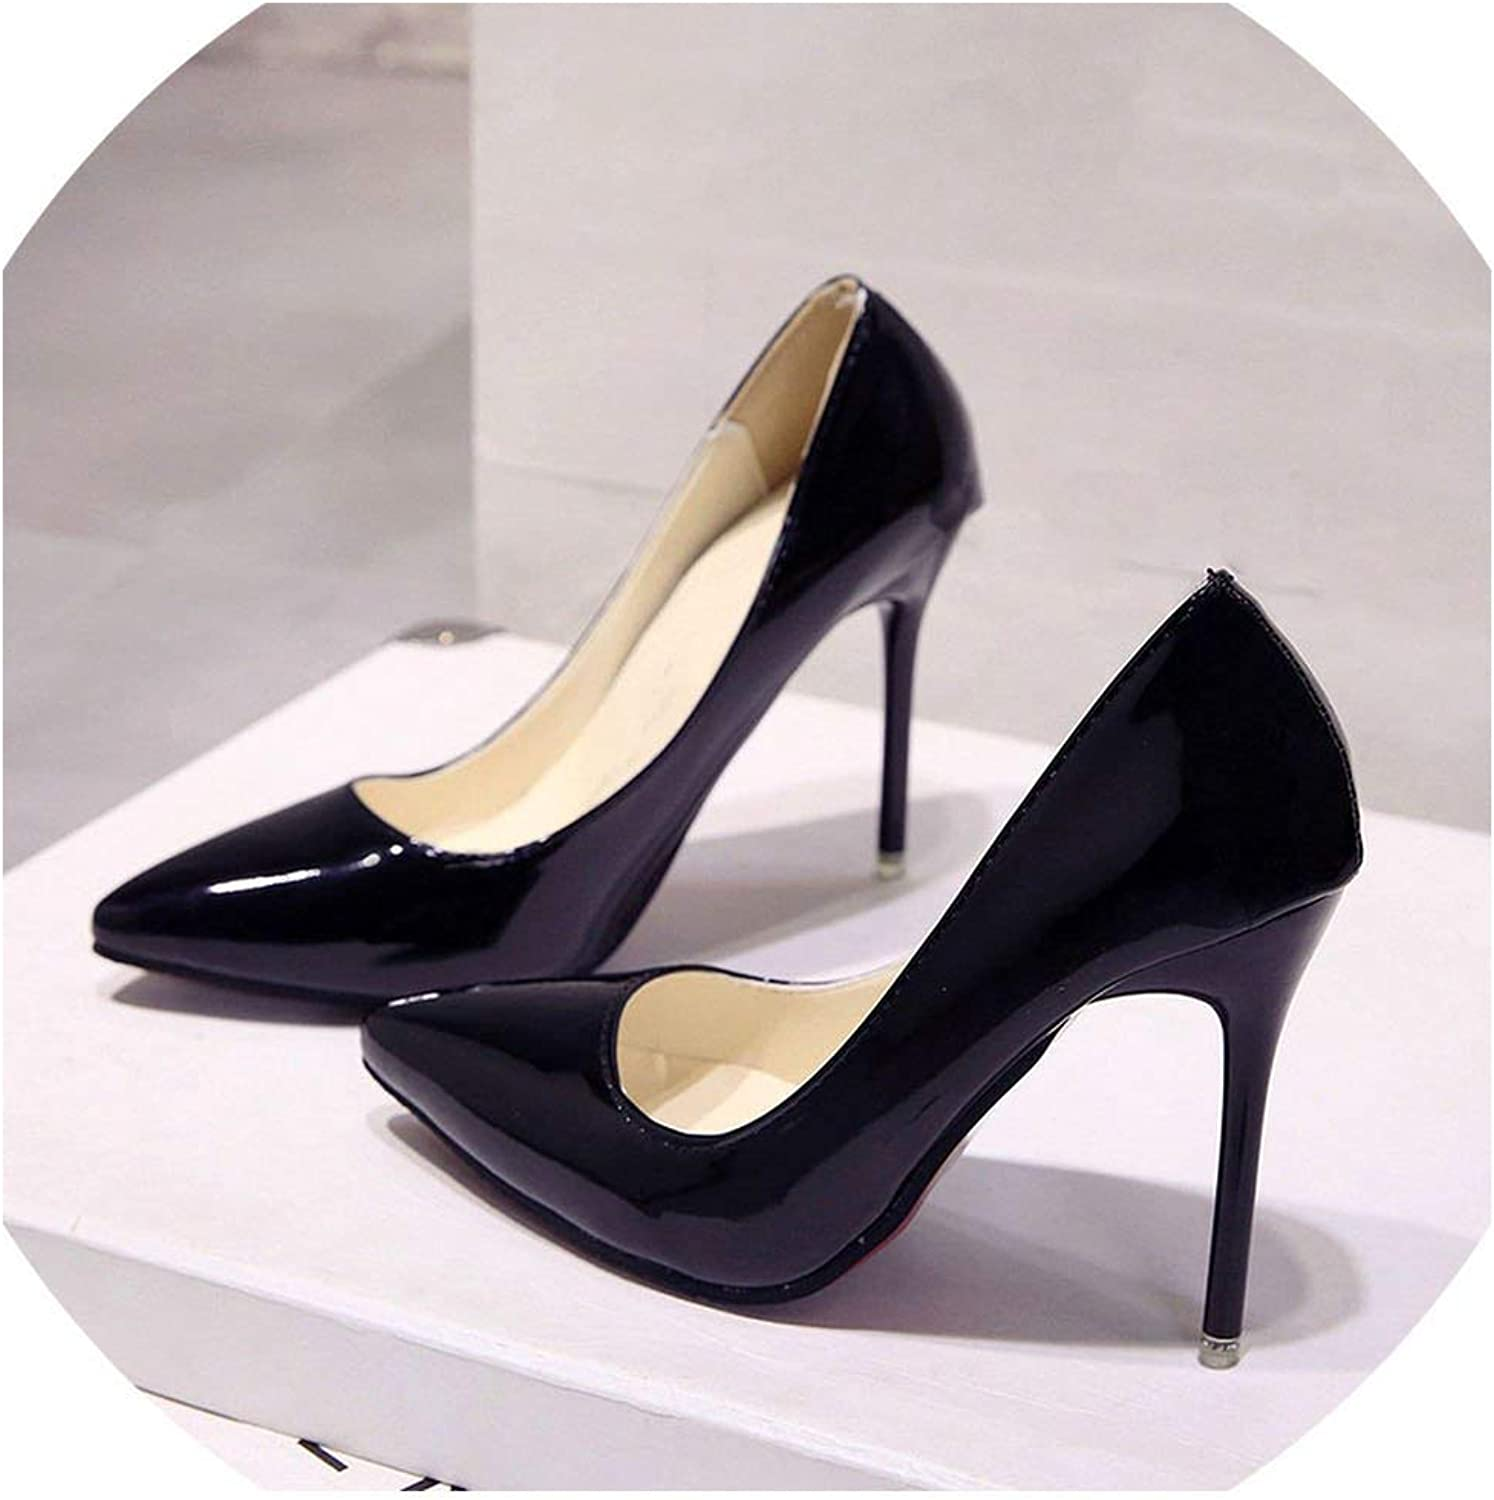 Women shoes Pointed Toe Pumps Patent Leather Dress High Heels Boat shoes Wedding shoes